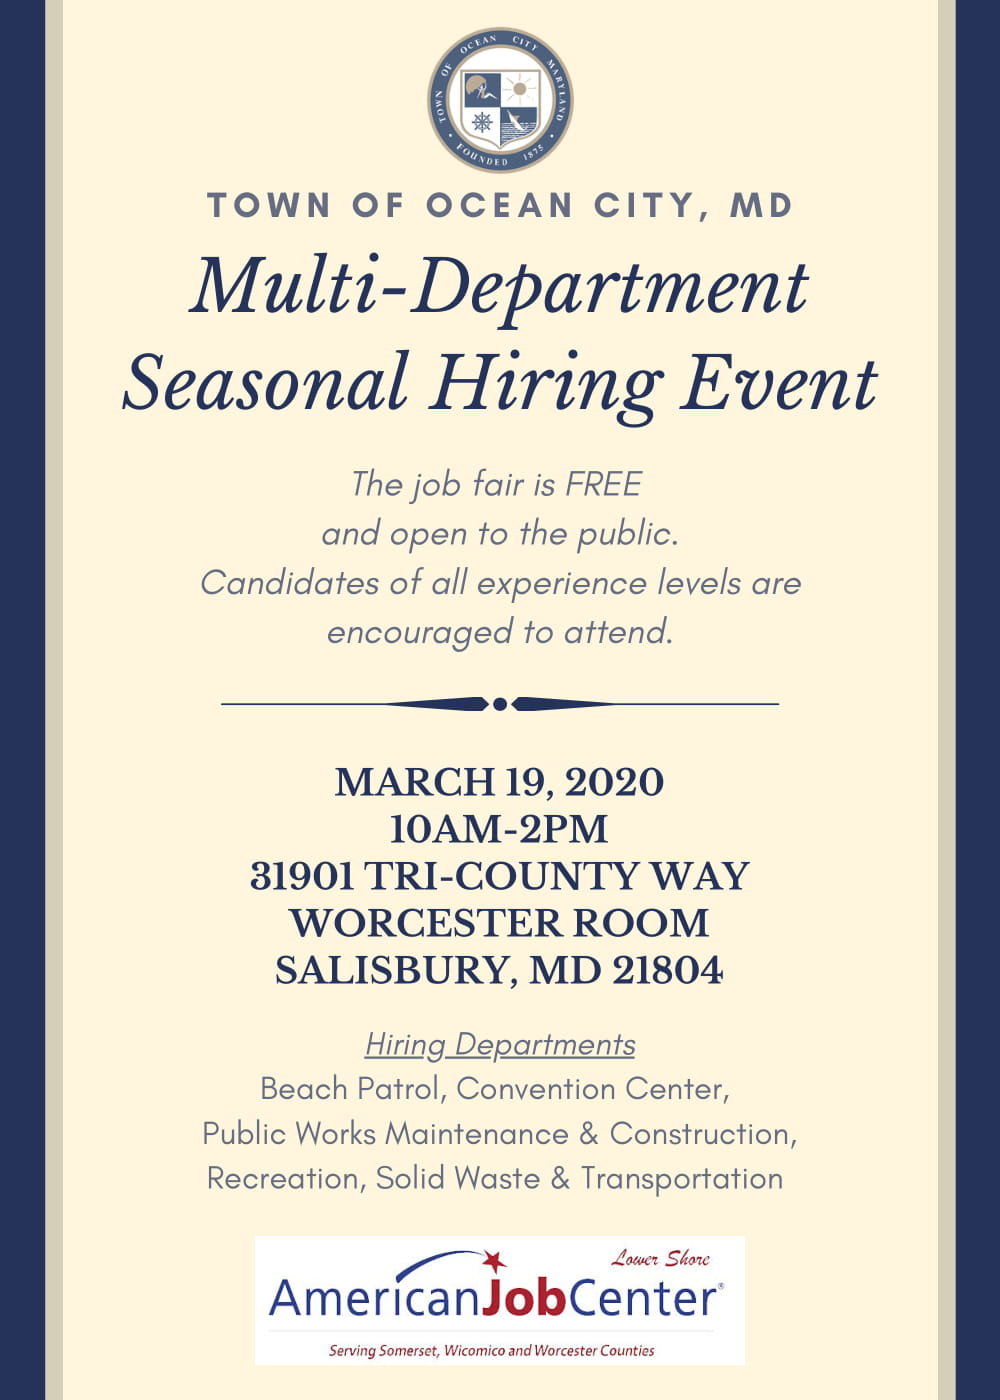 ***CANCELED*** Town of Ocean City Seasonal Hiring Event @ 31901 TRI-COUNTY WAY WORCESTER ROOM